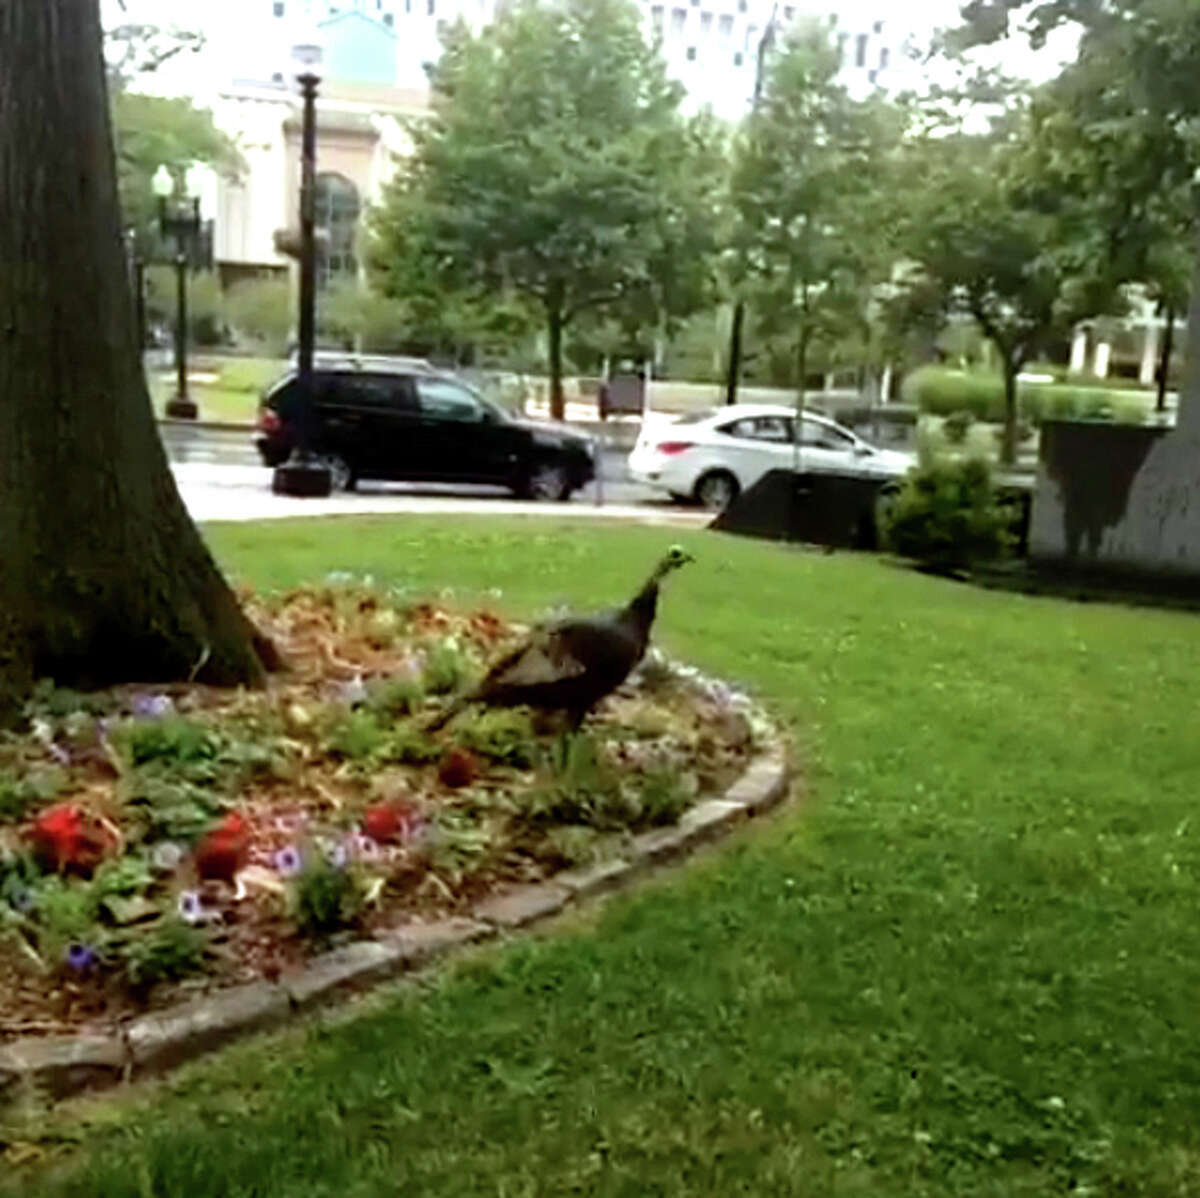 A wild turkey has been seen frequently in downtown Bridgeport this summer.